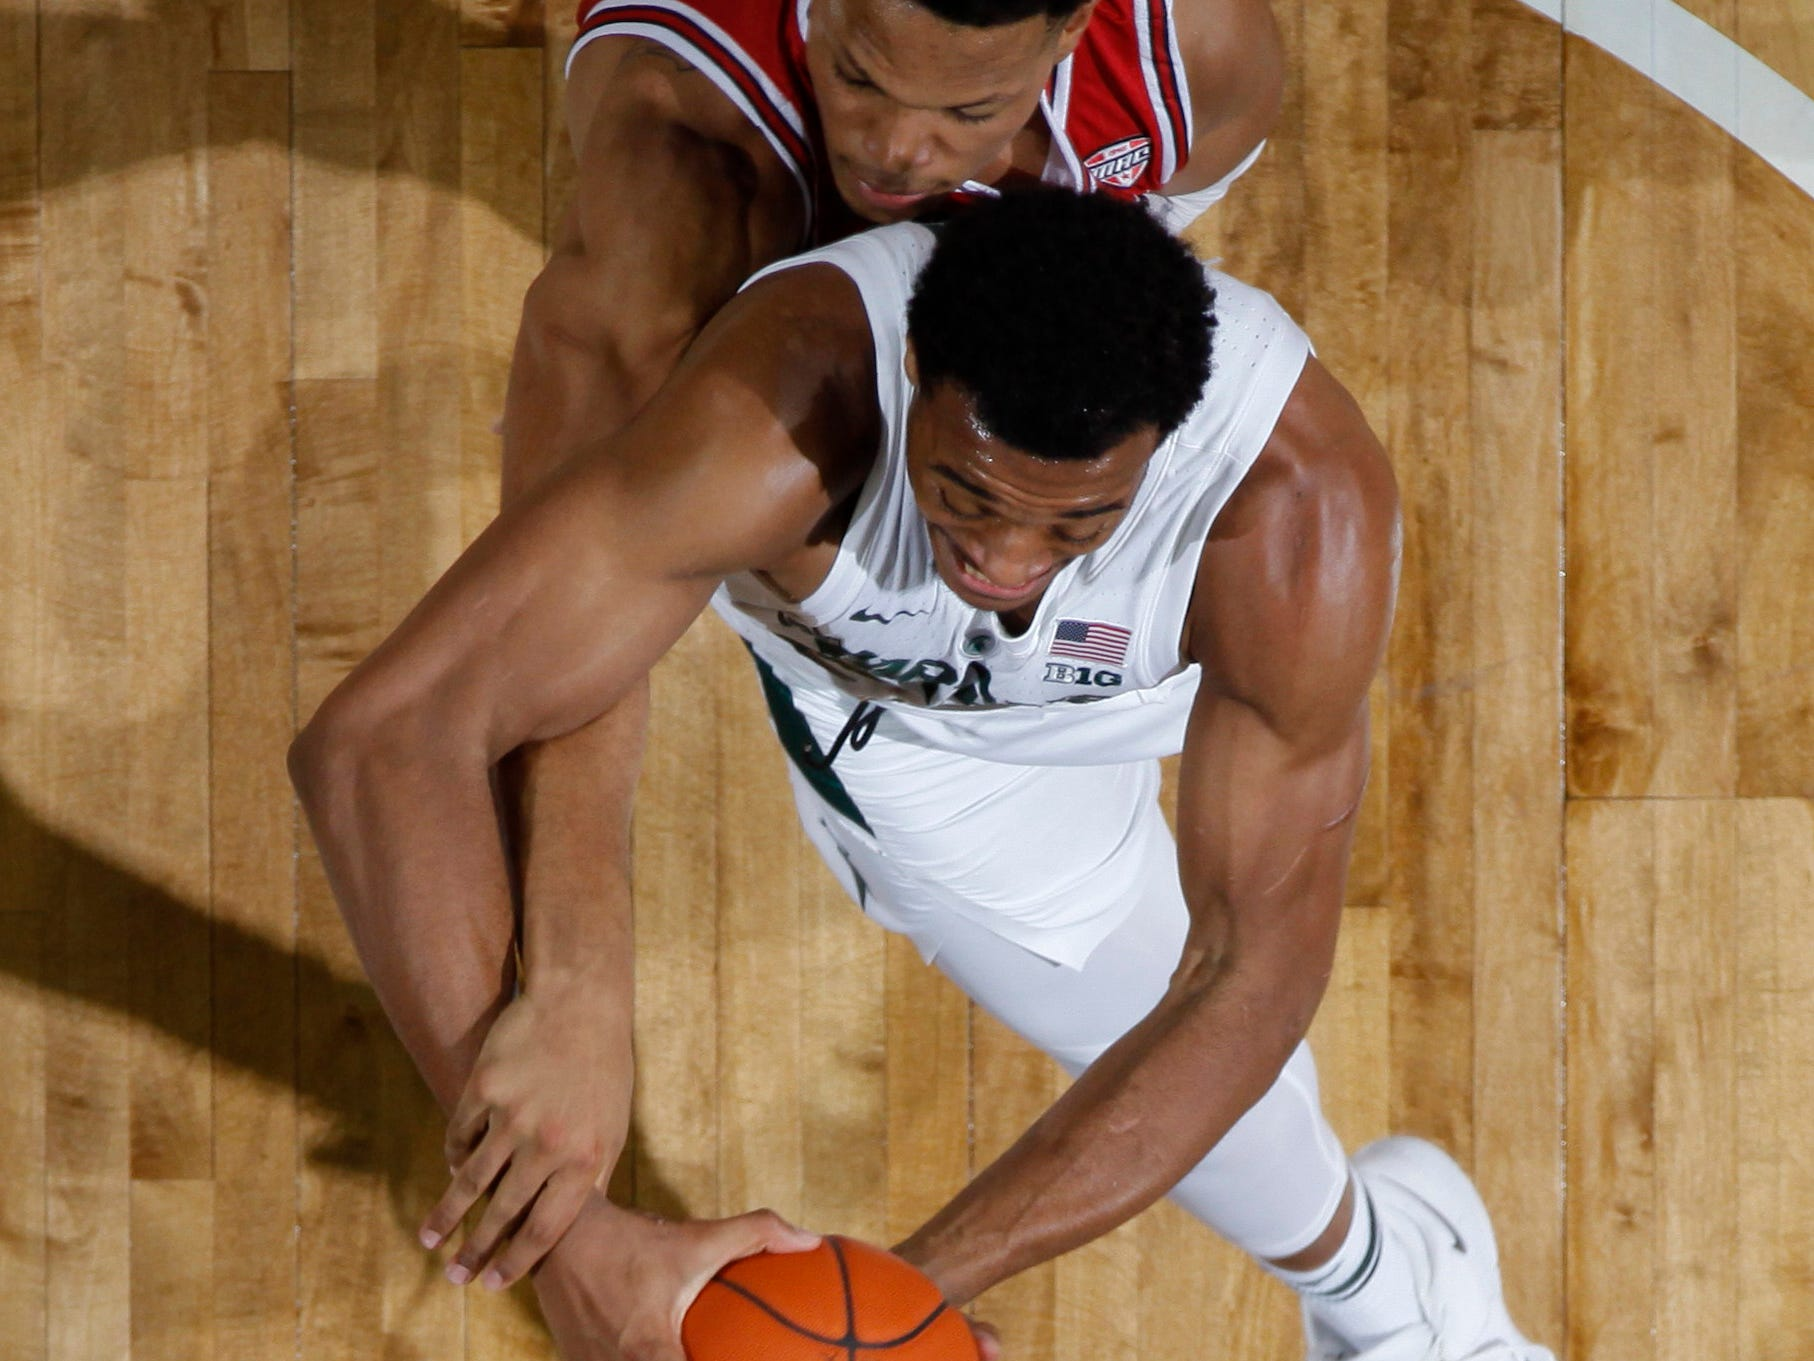 Michigan State's Xavier Tillman, bottom, is fouled by Northern Illinois' Lacey James, Saturday, Dec. 29, 2018, in East Lansing, Mich.